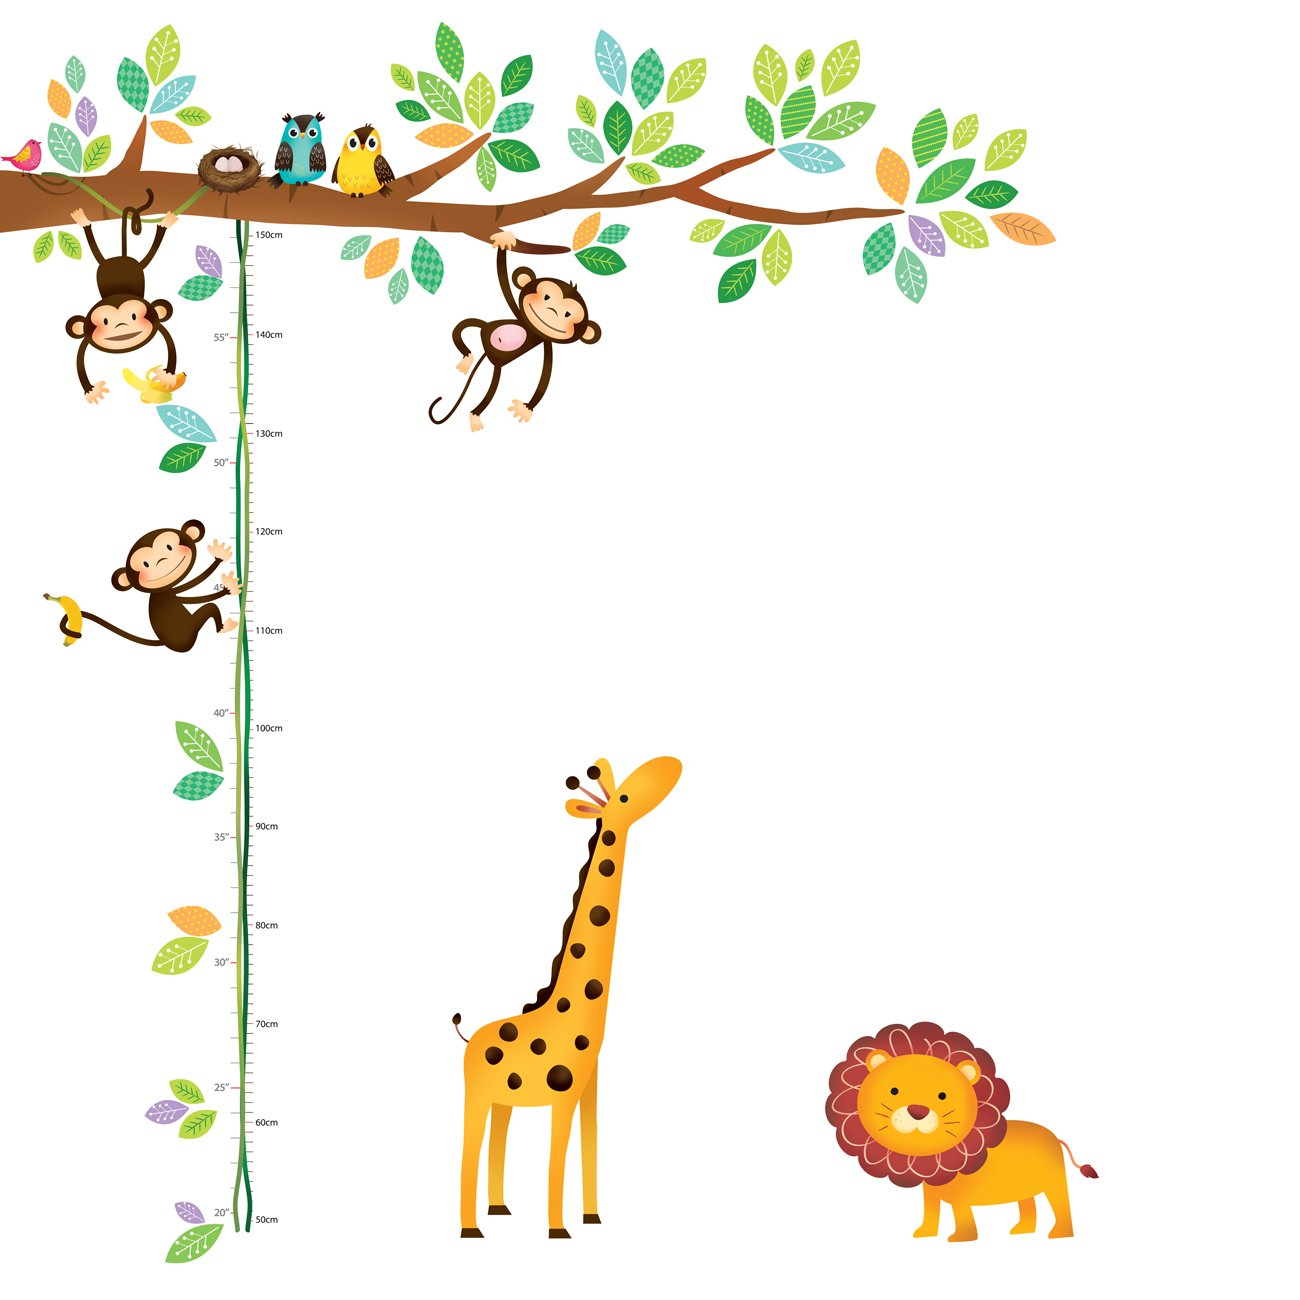 Decowall DW-1402 Little Monkeys Tree and Animals Height Chart Kids Wall Decals Wall Stickers Peel and Stick Removable Wall Stickers for Kids Nursery Bedroom Living Room by DECOWALL